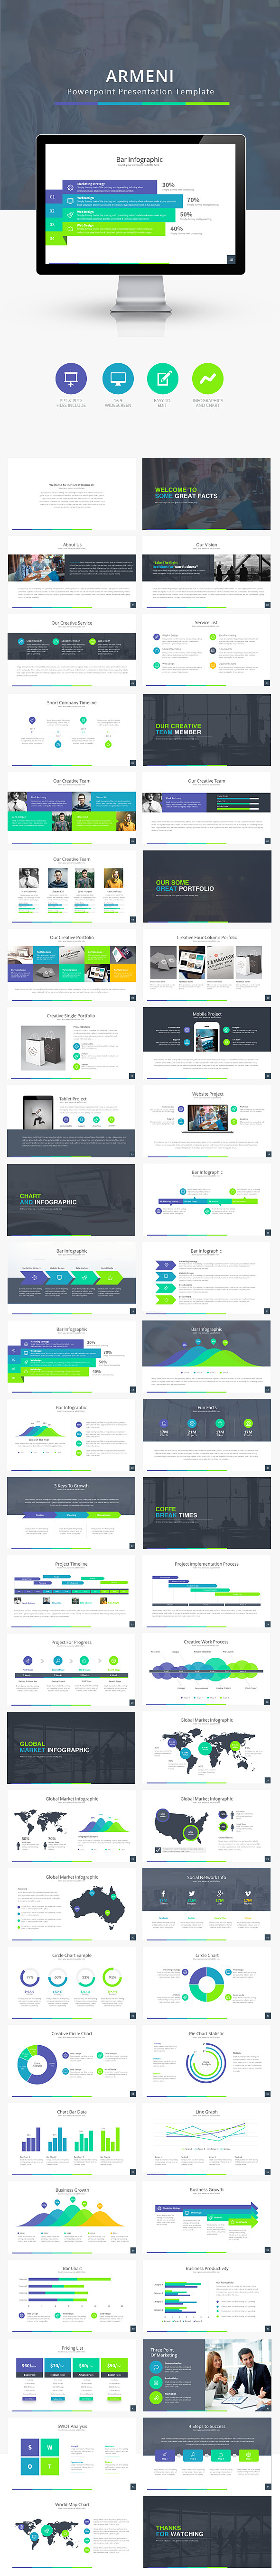 GraphicRiver Armeni Powerpoint Presentation Template 8799525